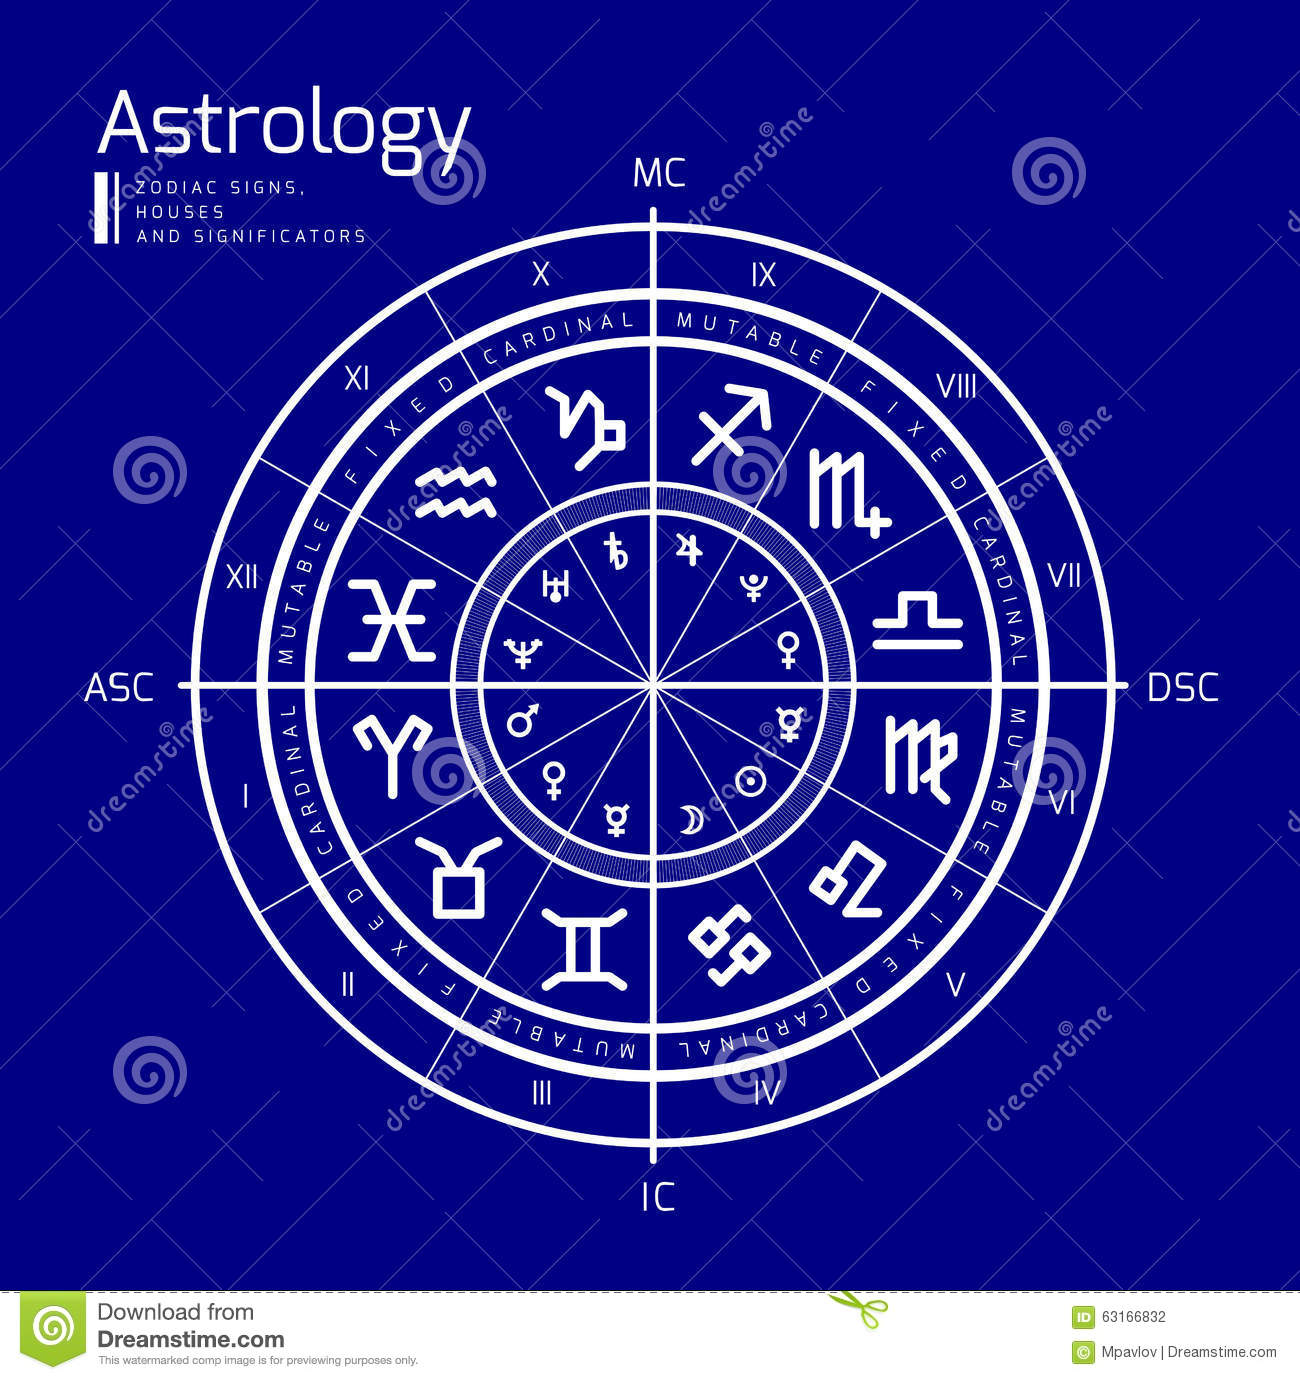 Astrology vector background stock vector illustration of jupiter natal chart zodiac signs houses and significators vector illustration ccuart Images